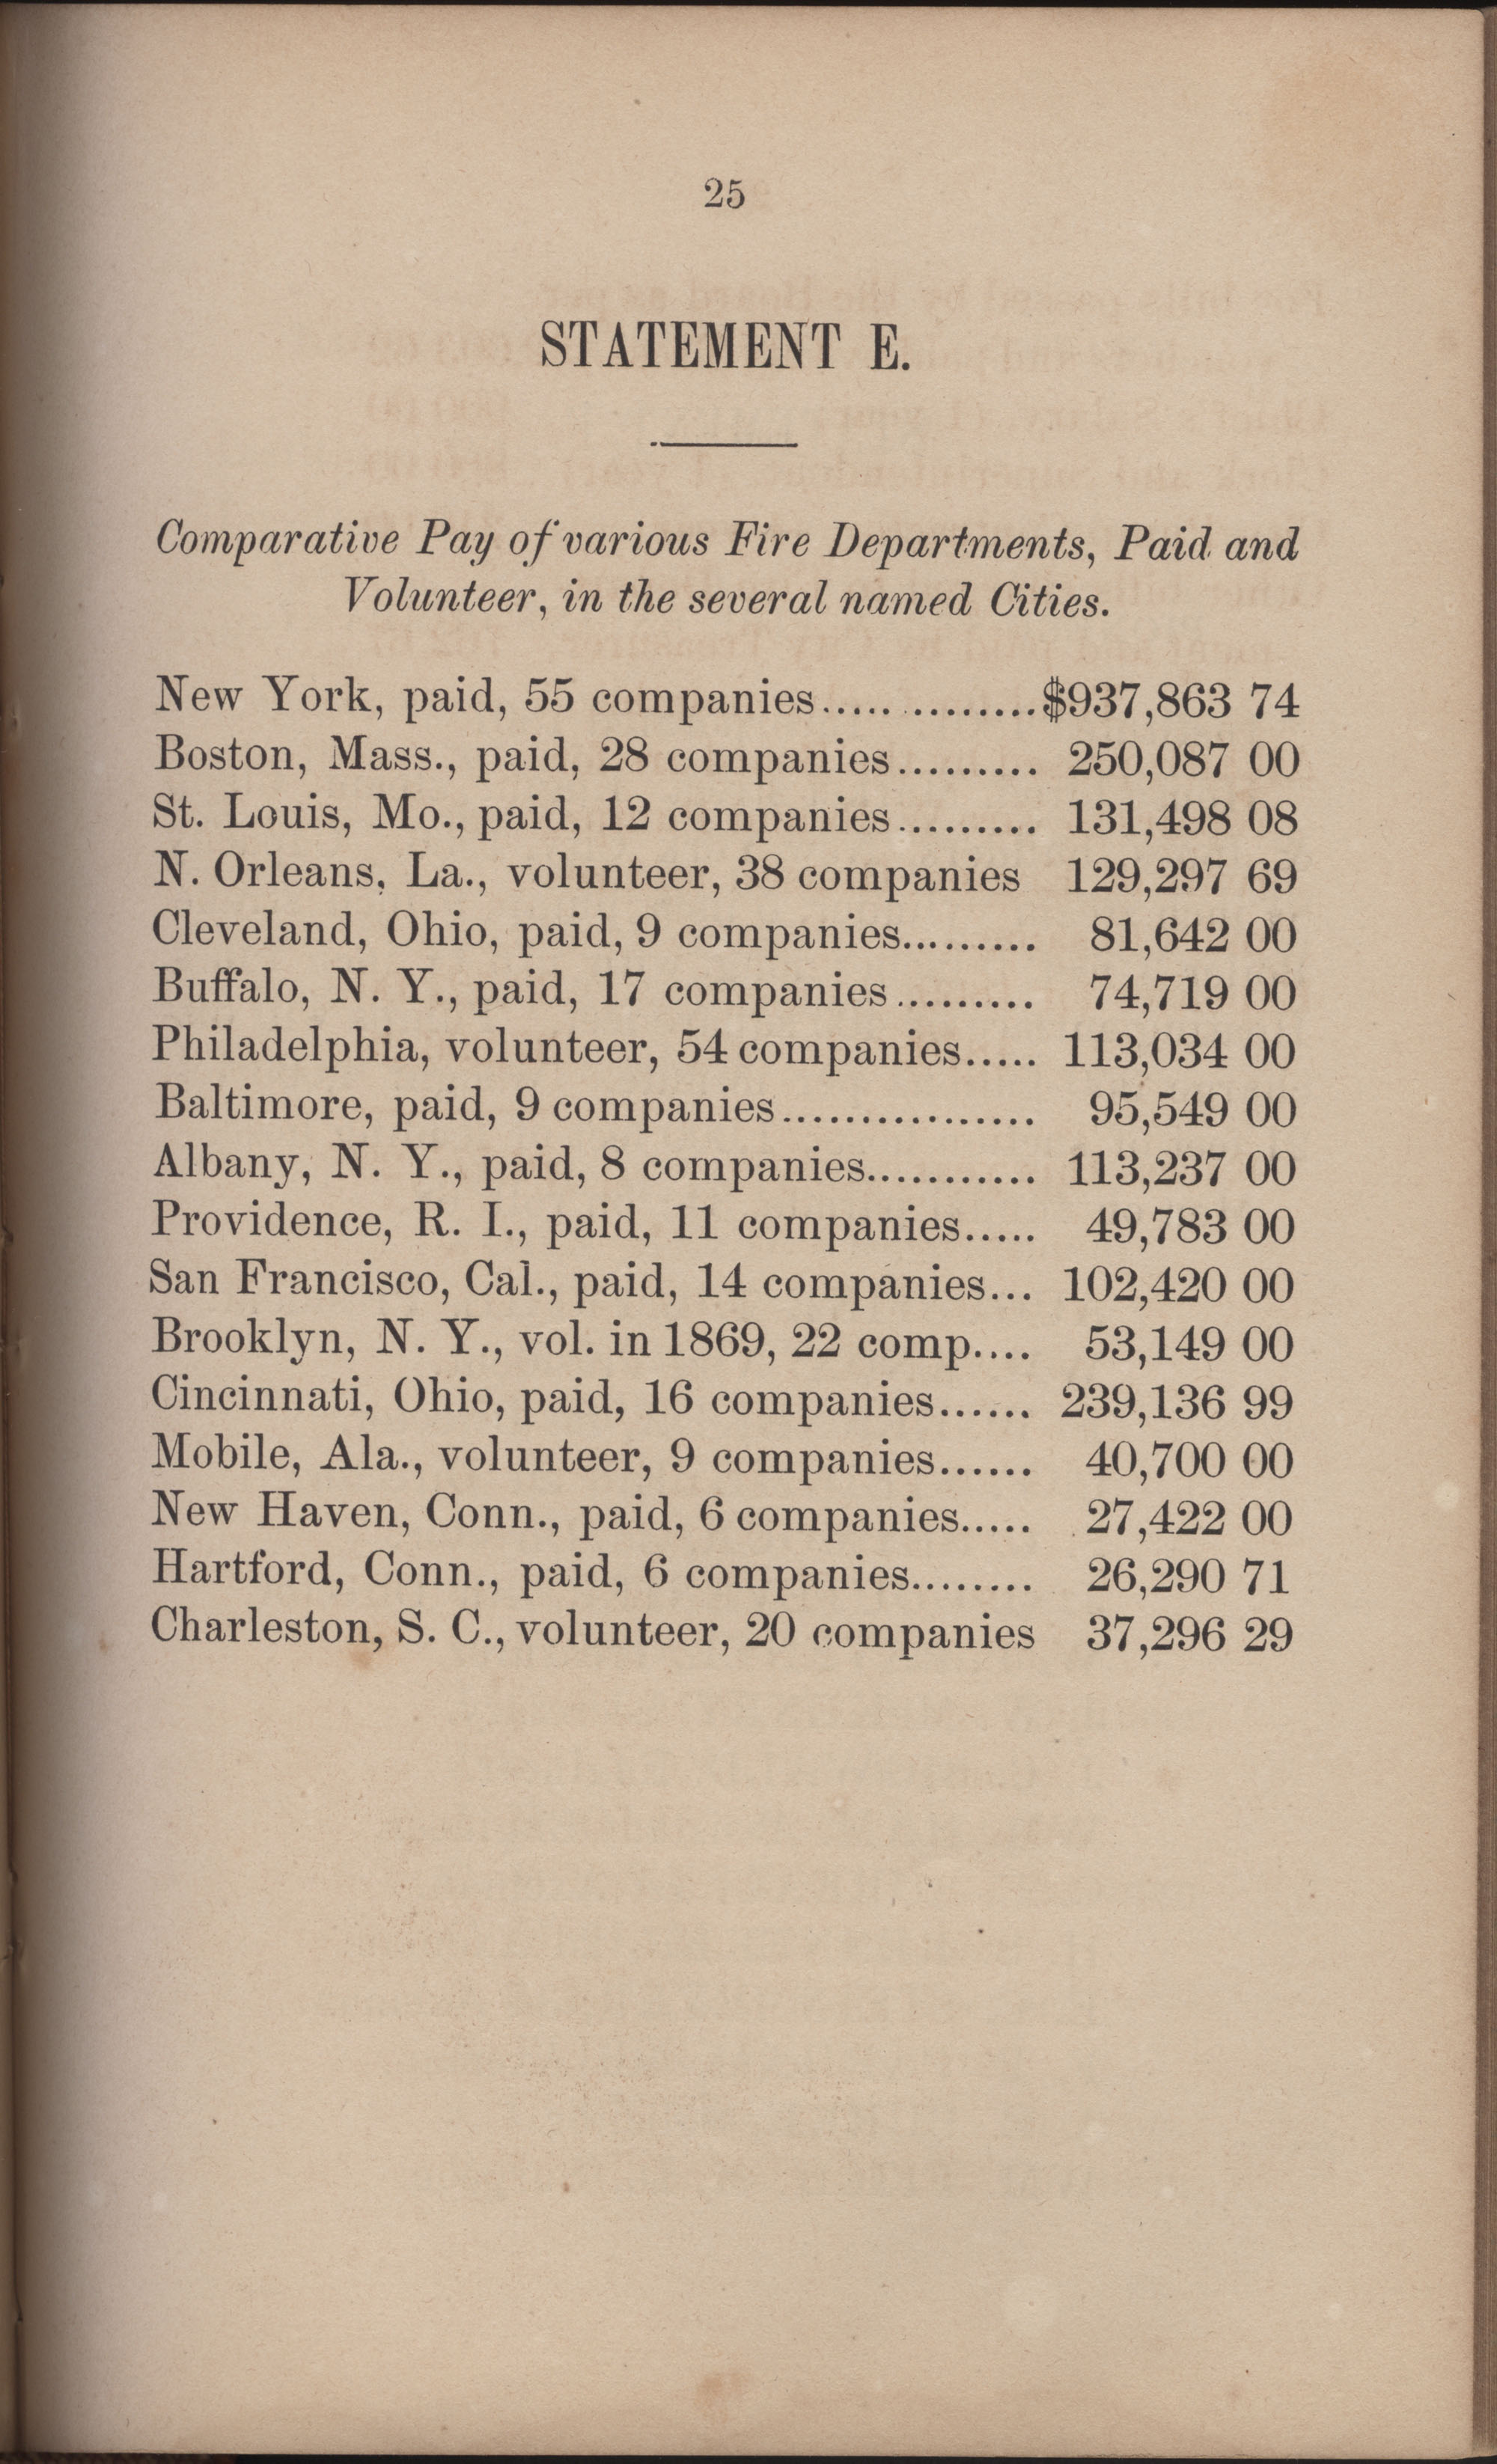 Annual Report of the Chief of the Fire Department of the City of Charleston, page 316